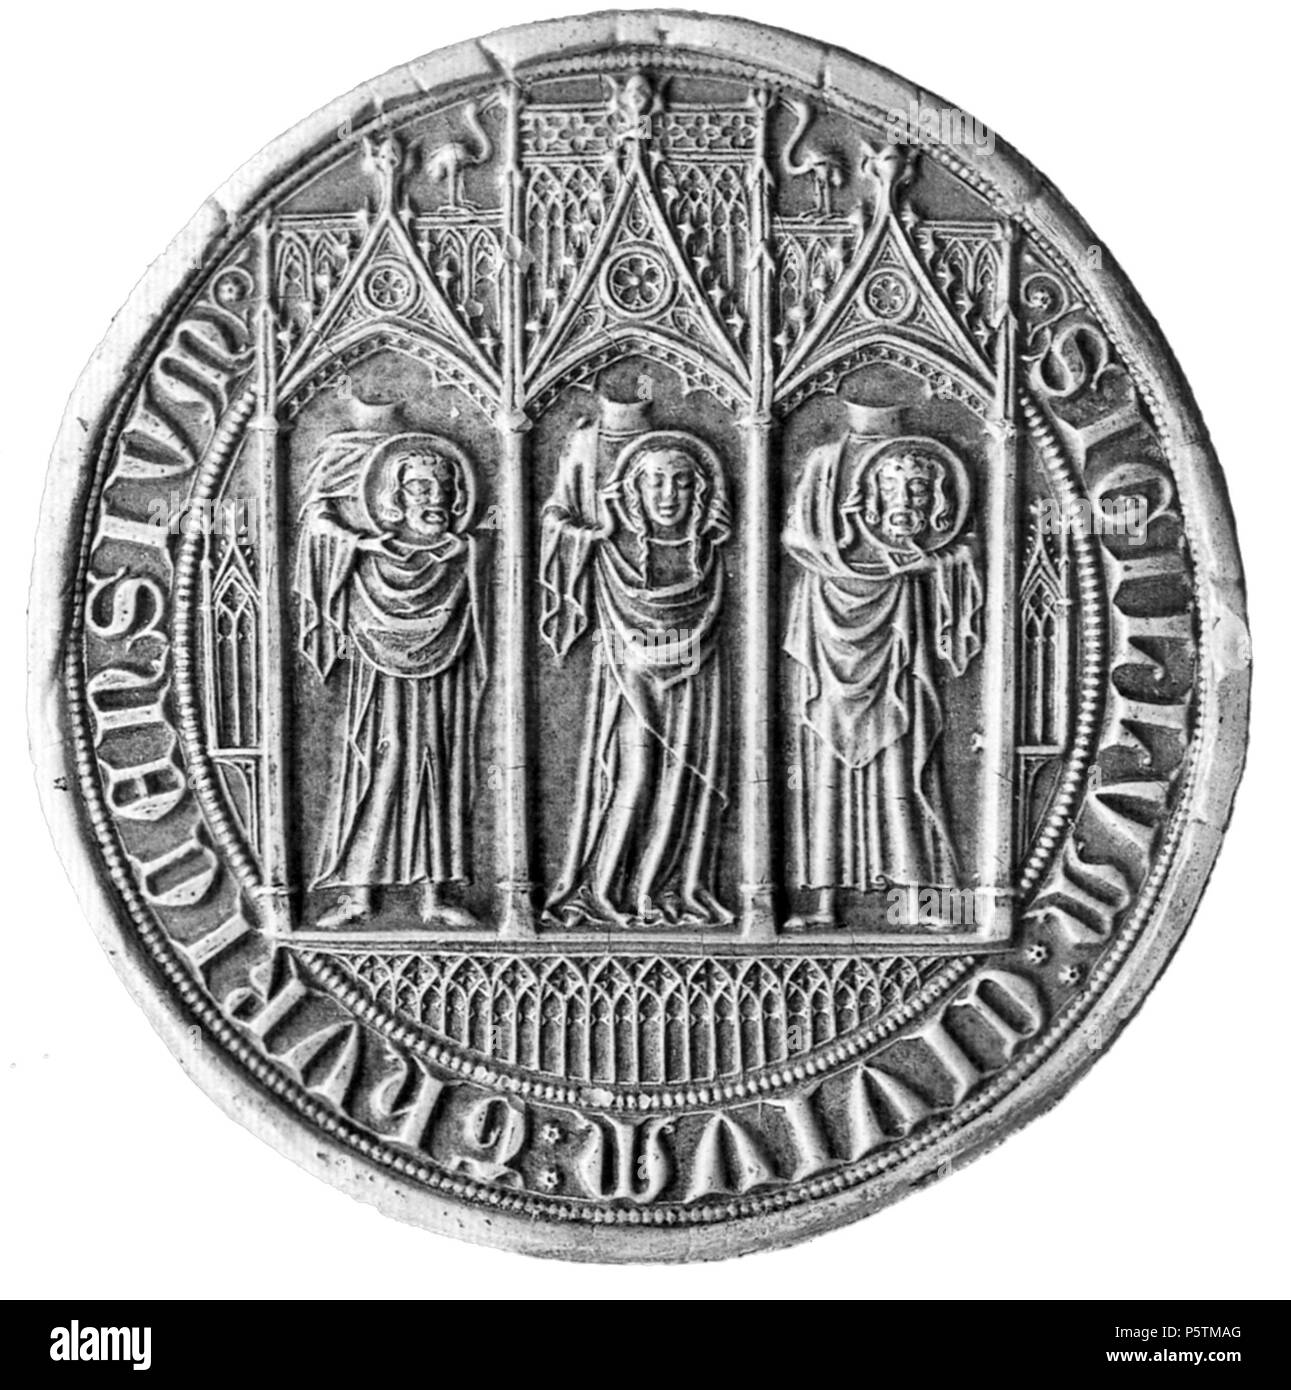 N/A. English: Seal of the city of Zürich 1347 Deutsch: Zürcher Staatssiegel von 1347. Vergoldetes Silber, Durchmesser 8 cm, Gewicht 270 Gramm. Staatsarchiv des Kantons Zürich . 1347. anonym; upload by sidonius (talk) 16:16, 19 September 2008 (UTC) 552 FelixRegula Stadtsiegel gauss sw - Stock Image